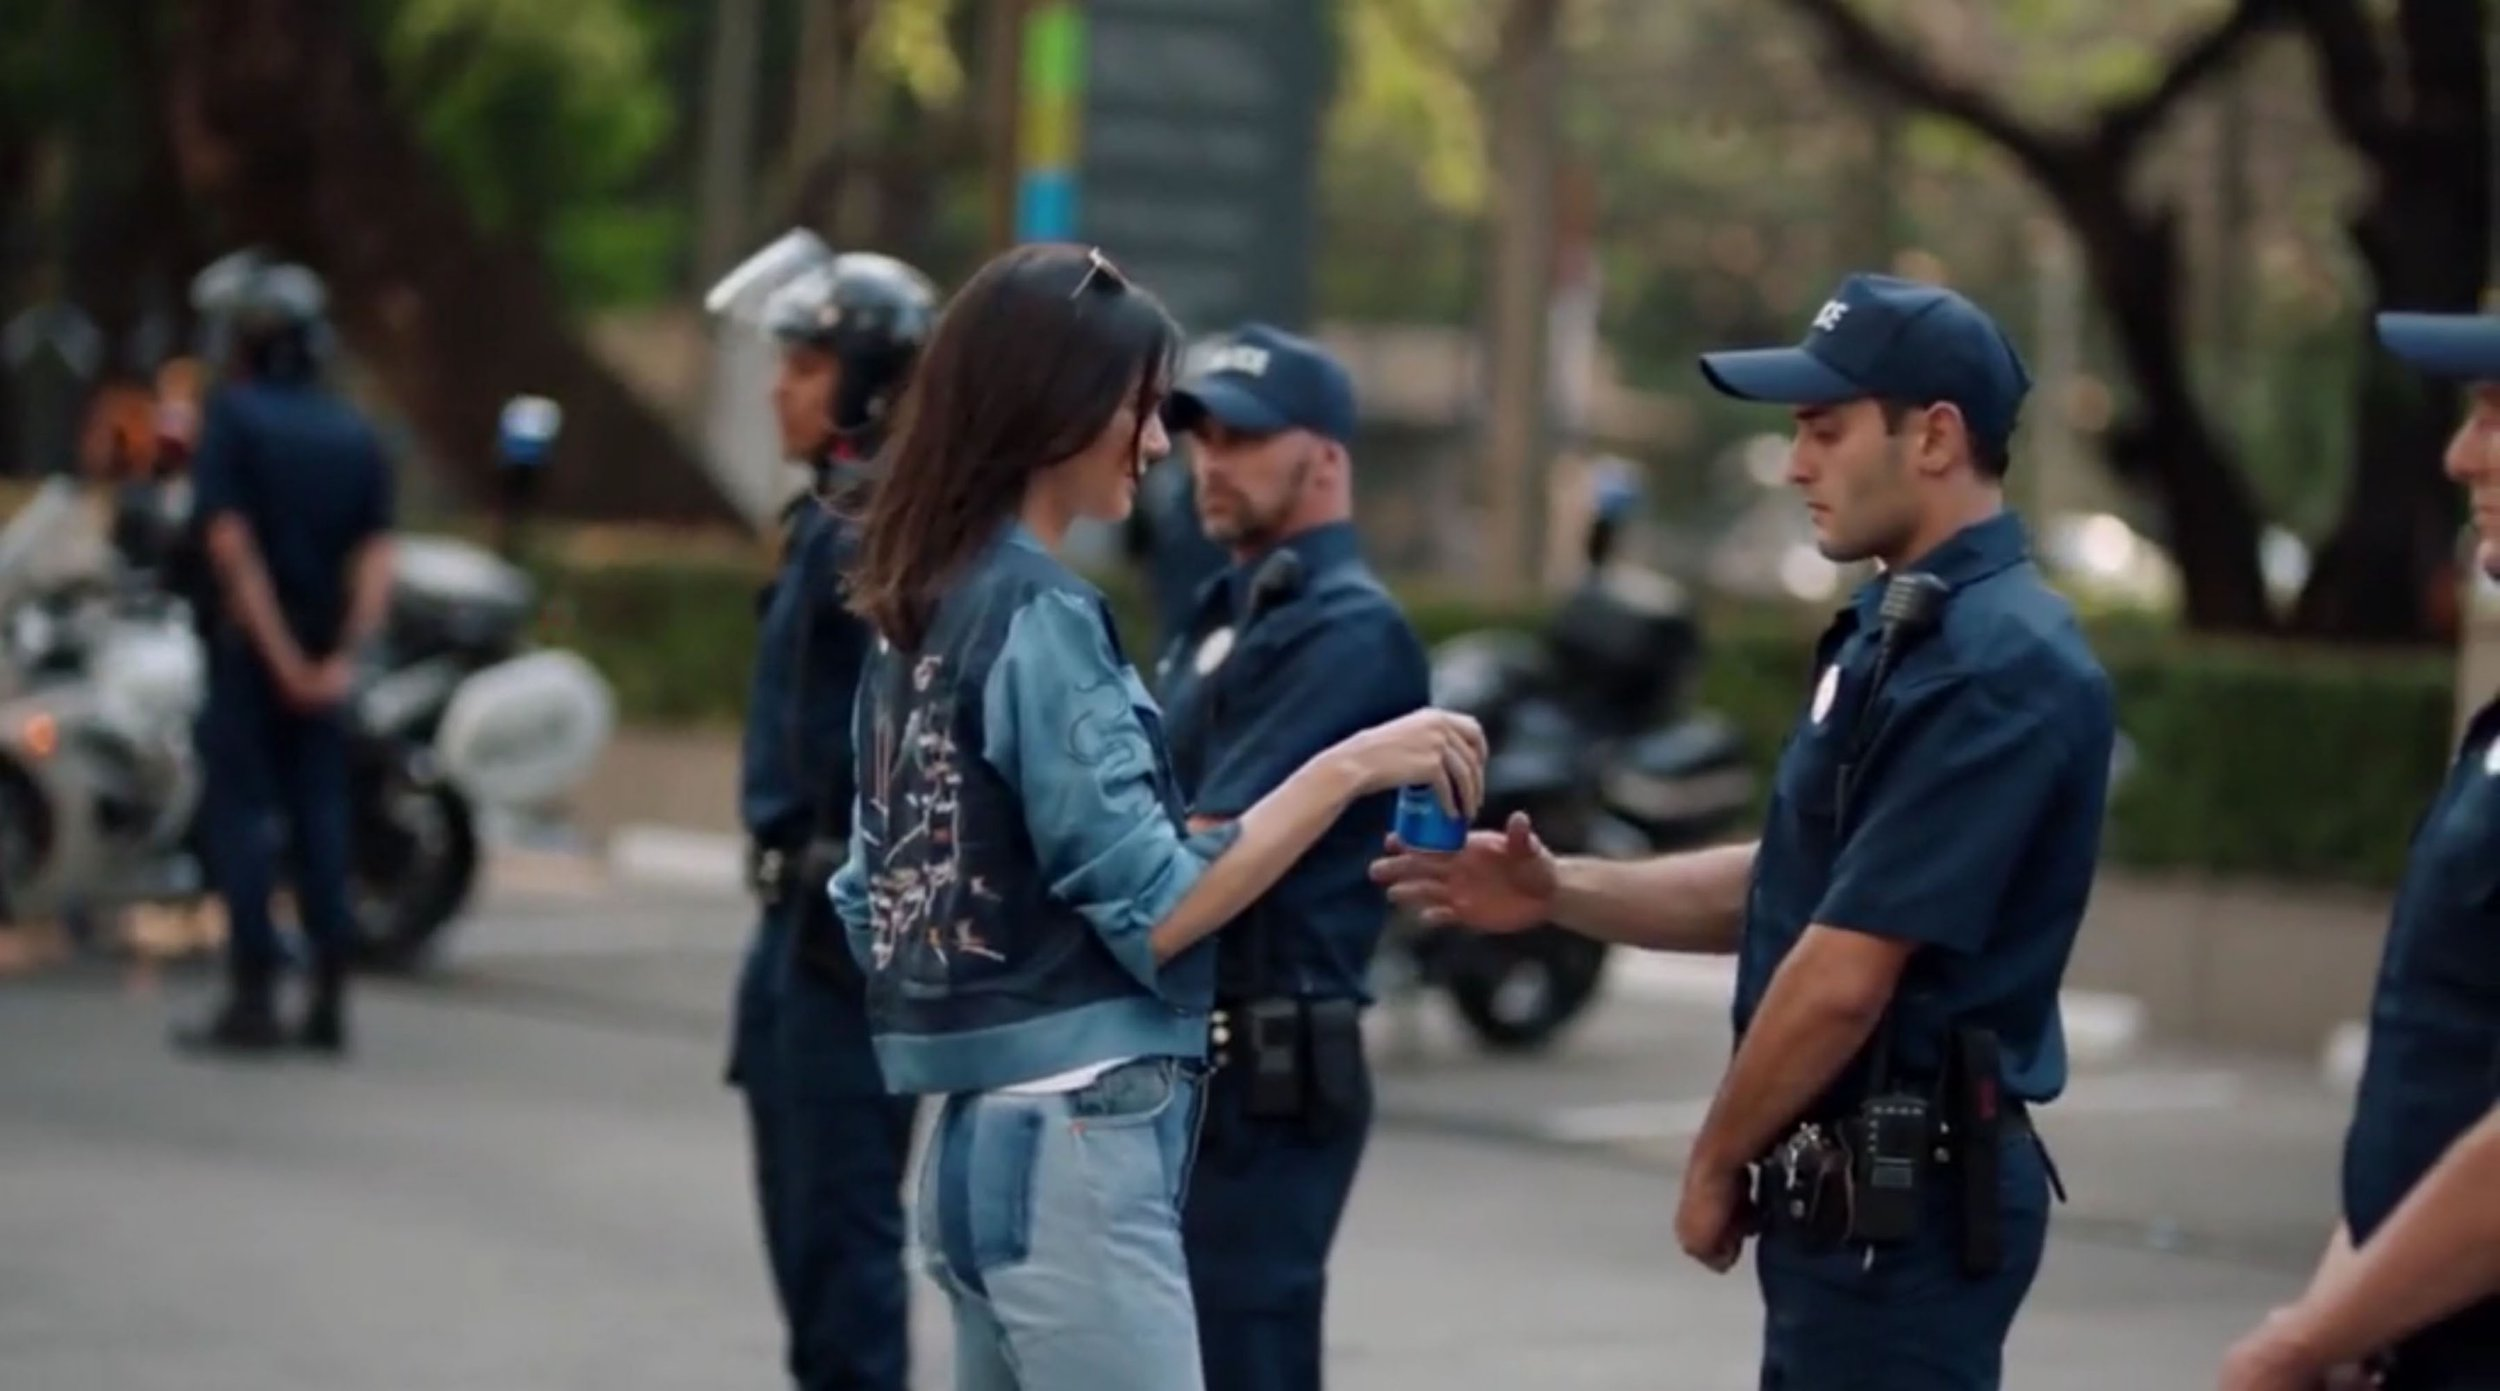 Pepsi announce they've pulled controversial Kendall Jenner advert which 'missed the mark'